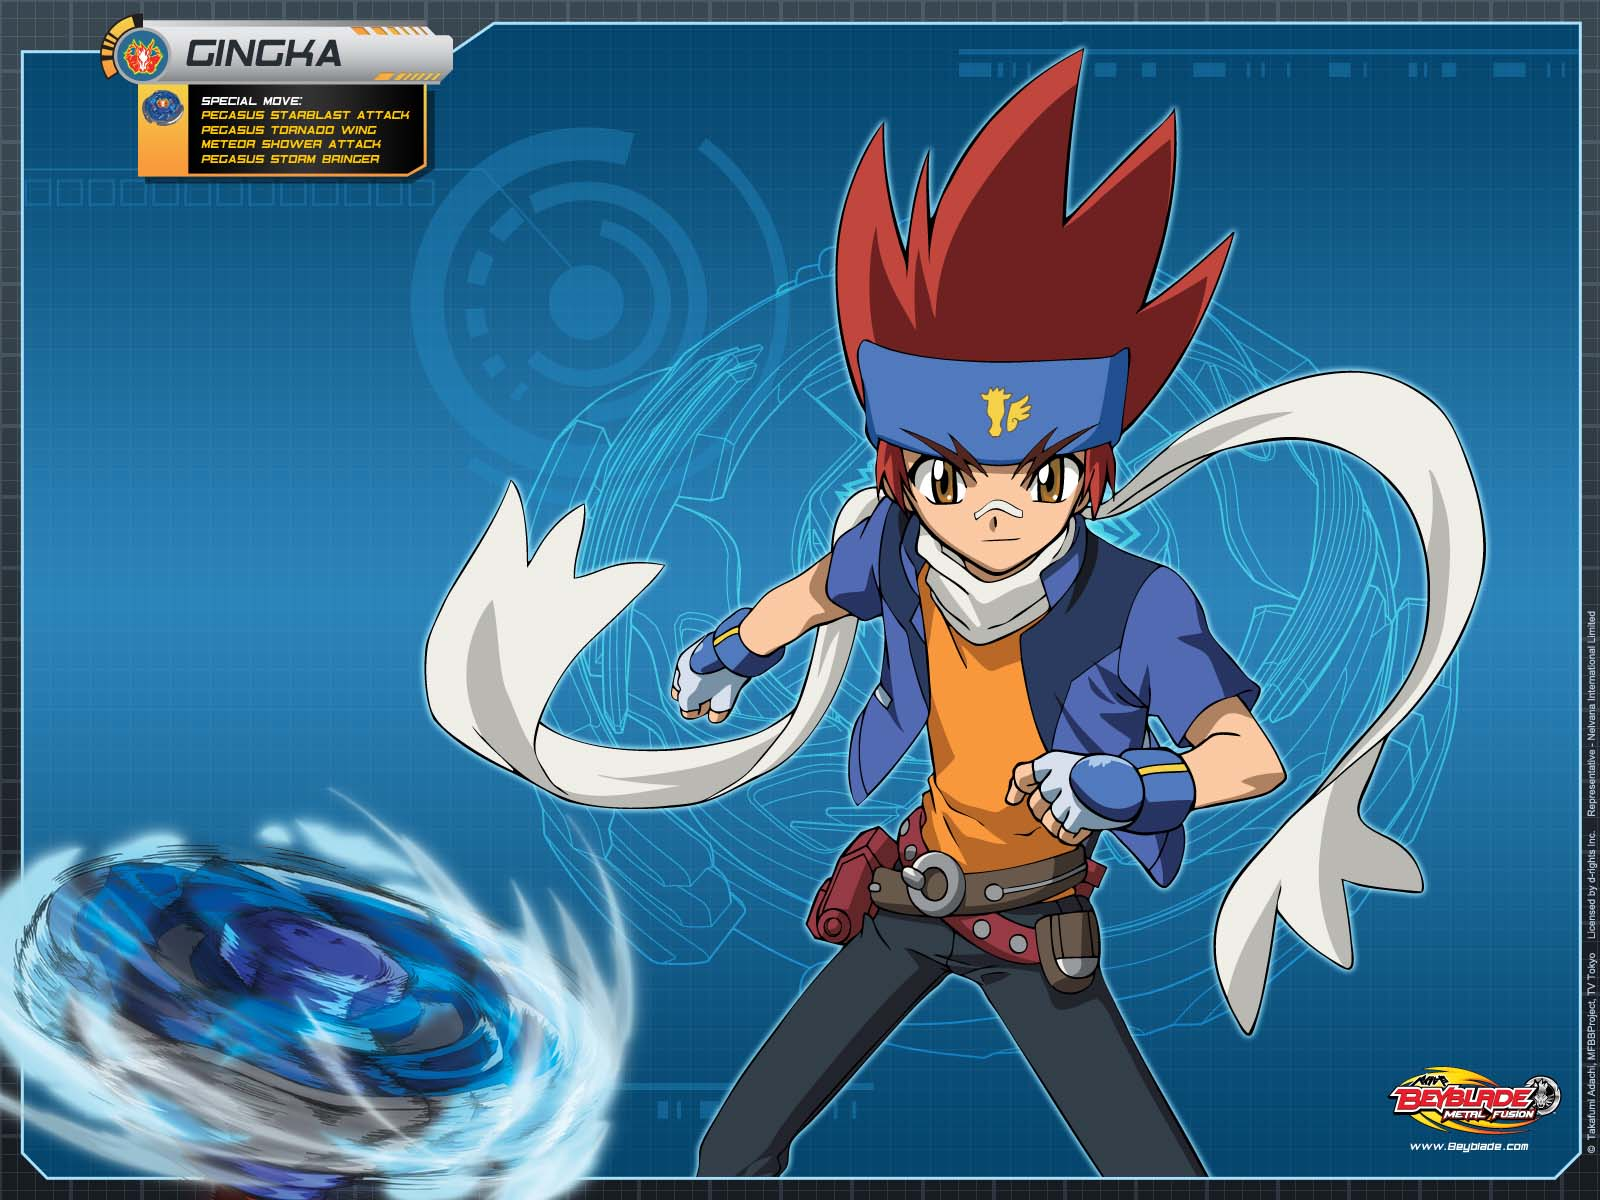 beyblade metal fusion anime videogame wallpapers. Black Bedroom Furniture Sets. Home Design Ideas